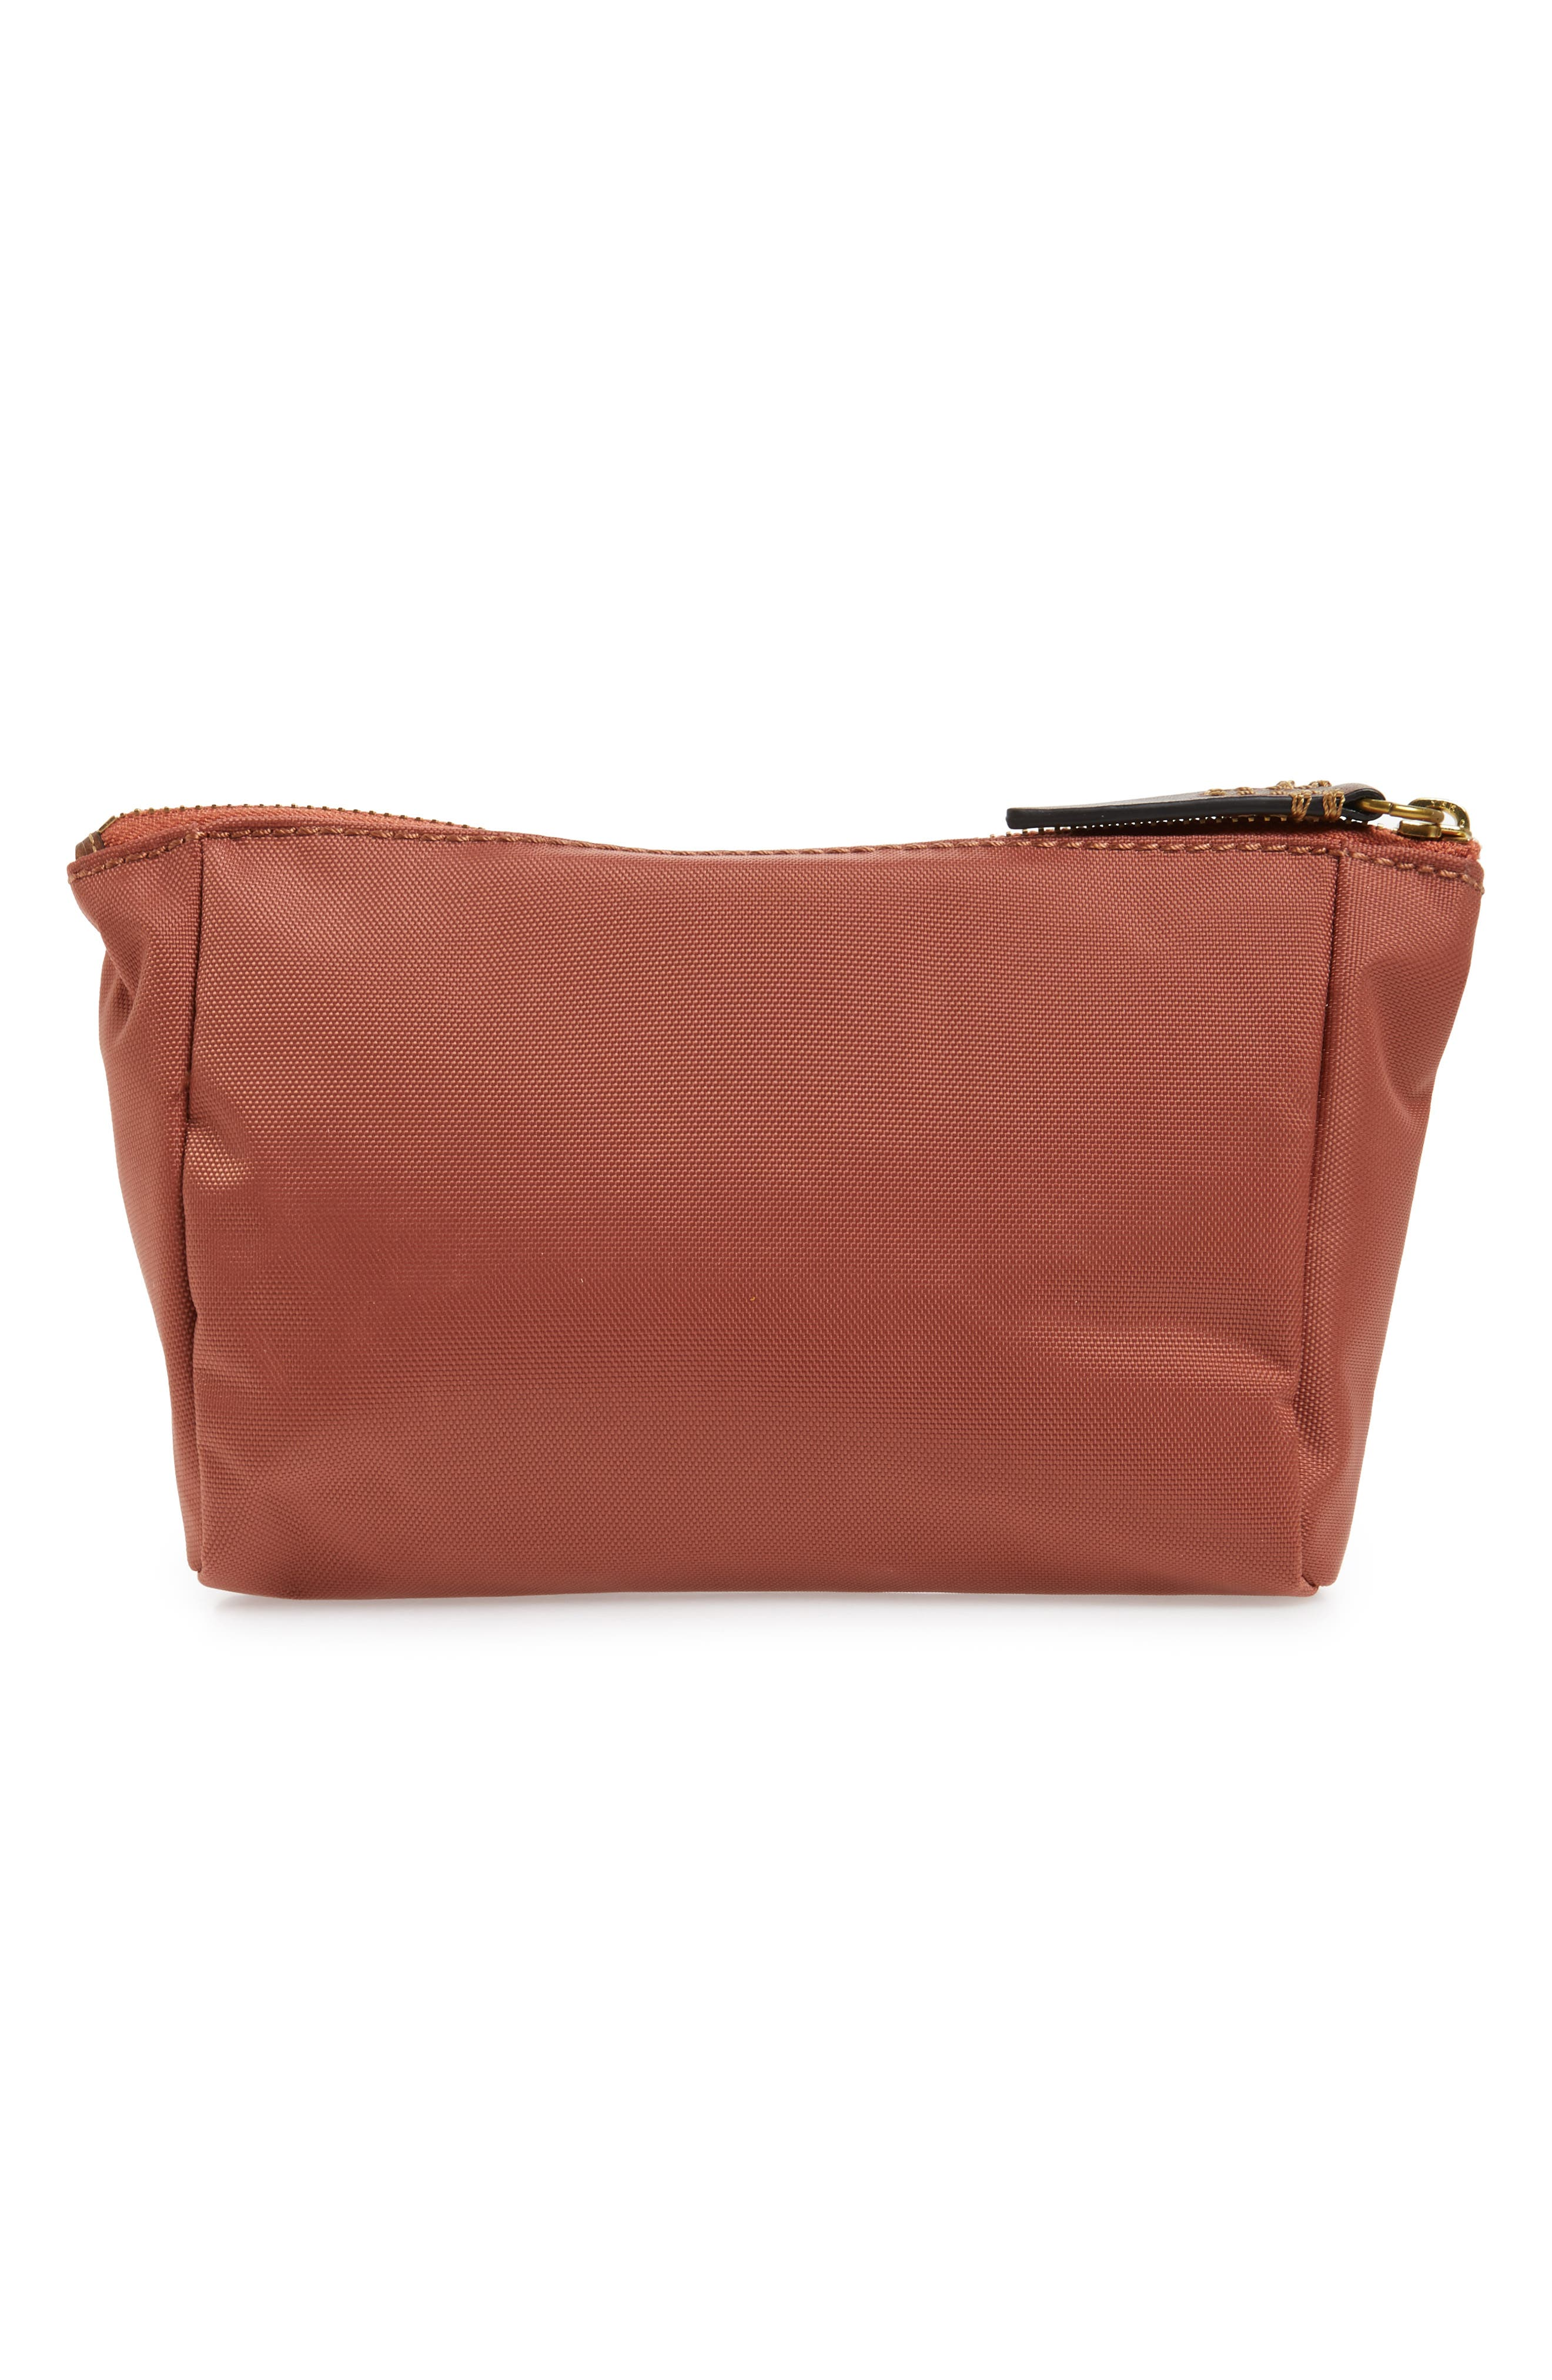 Ivy Nylon Cosmetics Bag,                             Alternate thumbnail 2, color,                             Dusty Rose